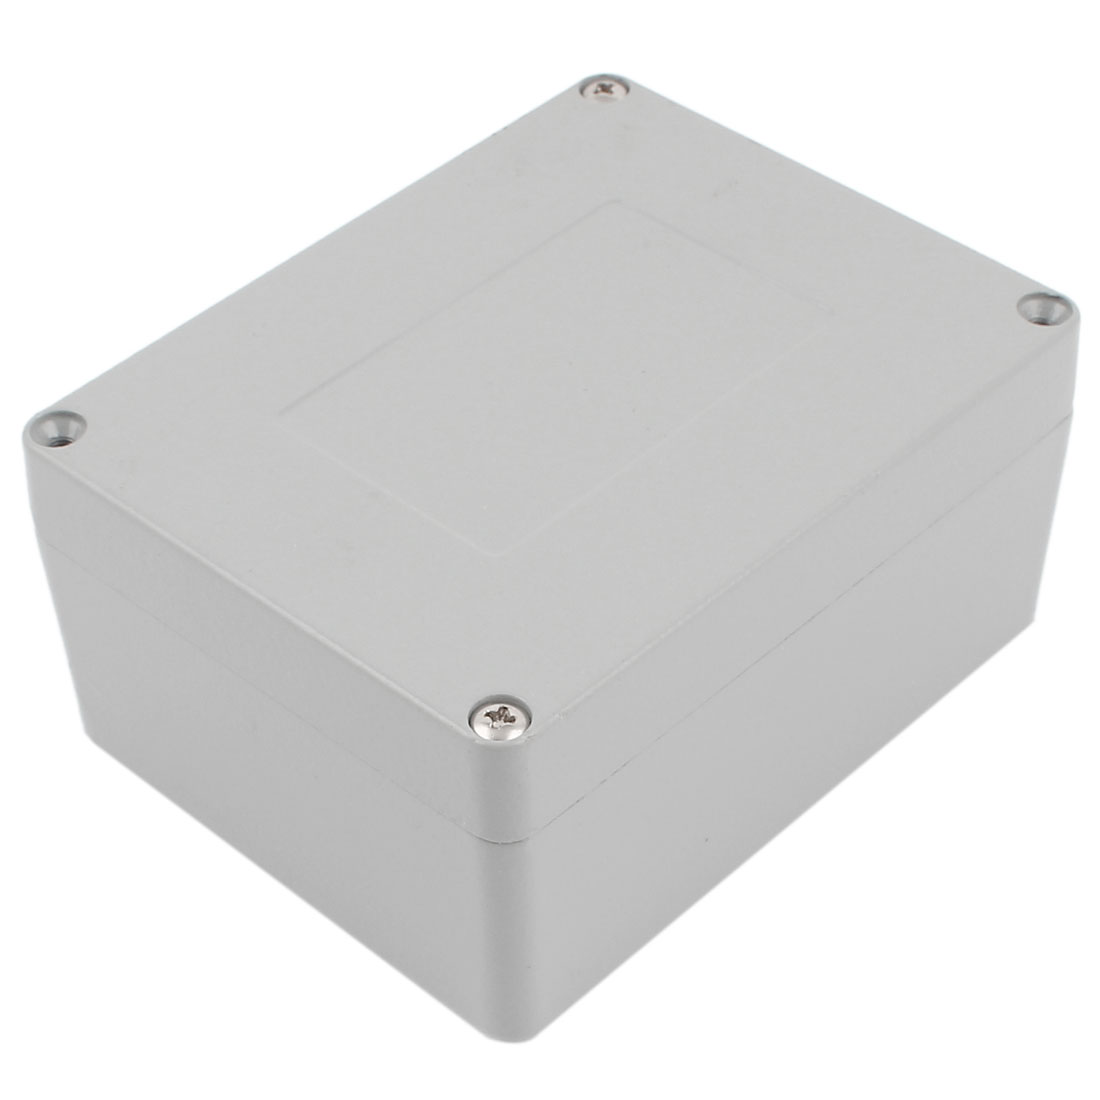 115mm x 90mm x 60mm Aluminium Alloy Dustproof IP65 Sealed Electrical Junction Box